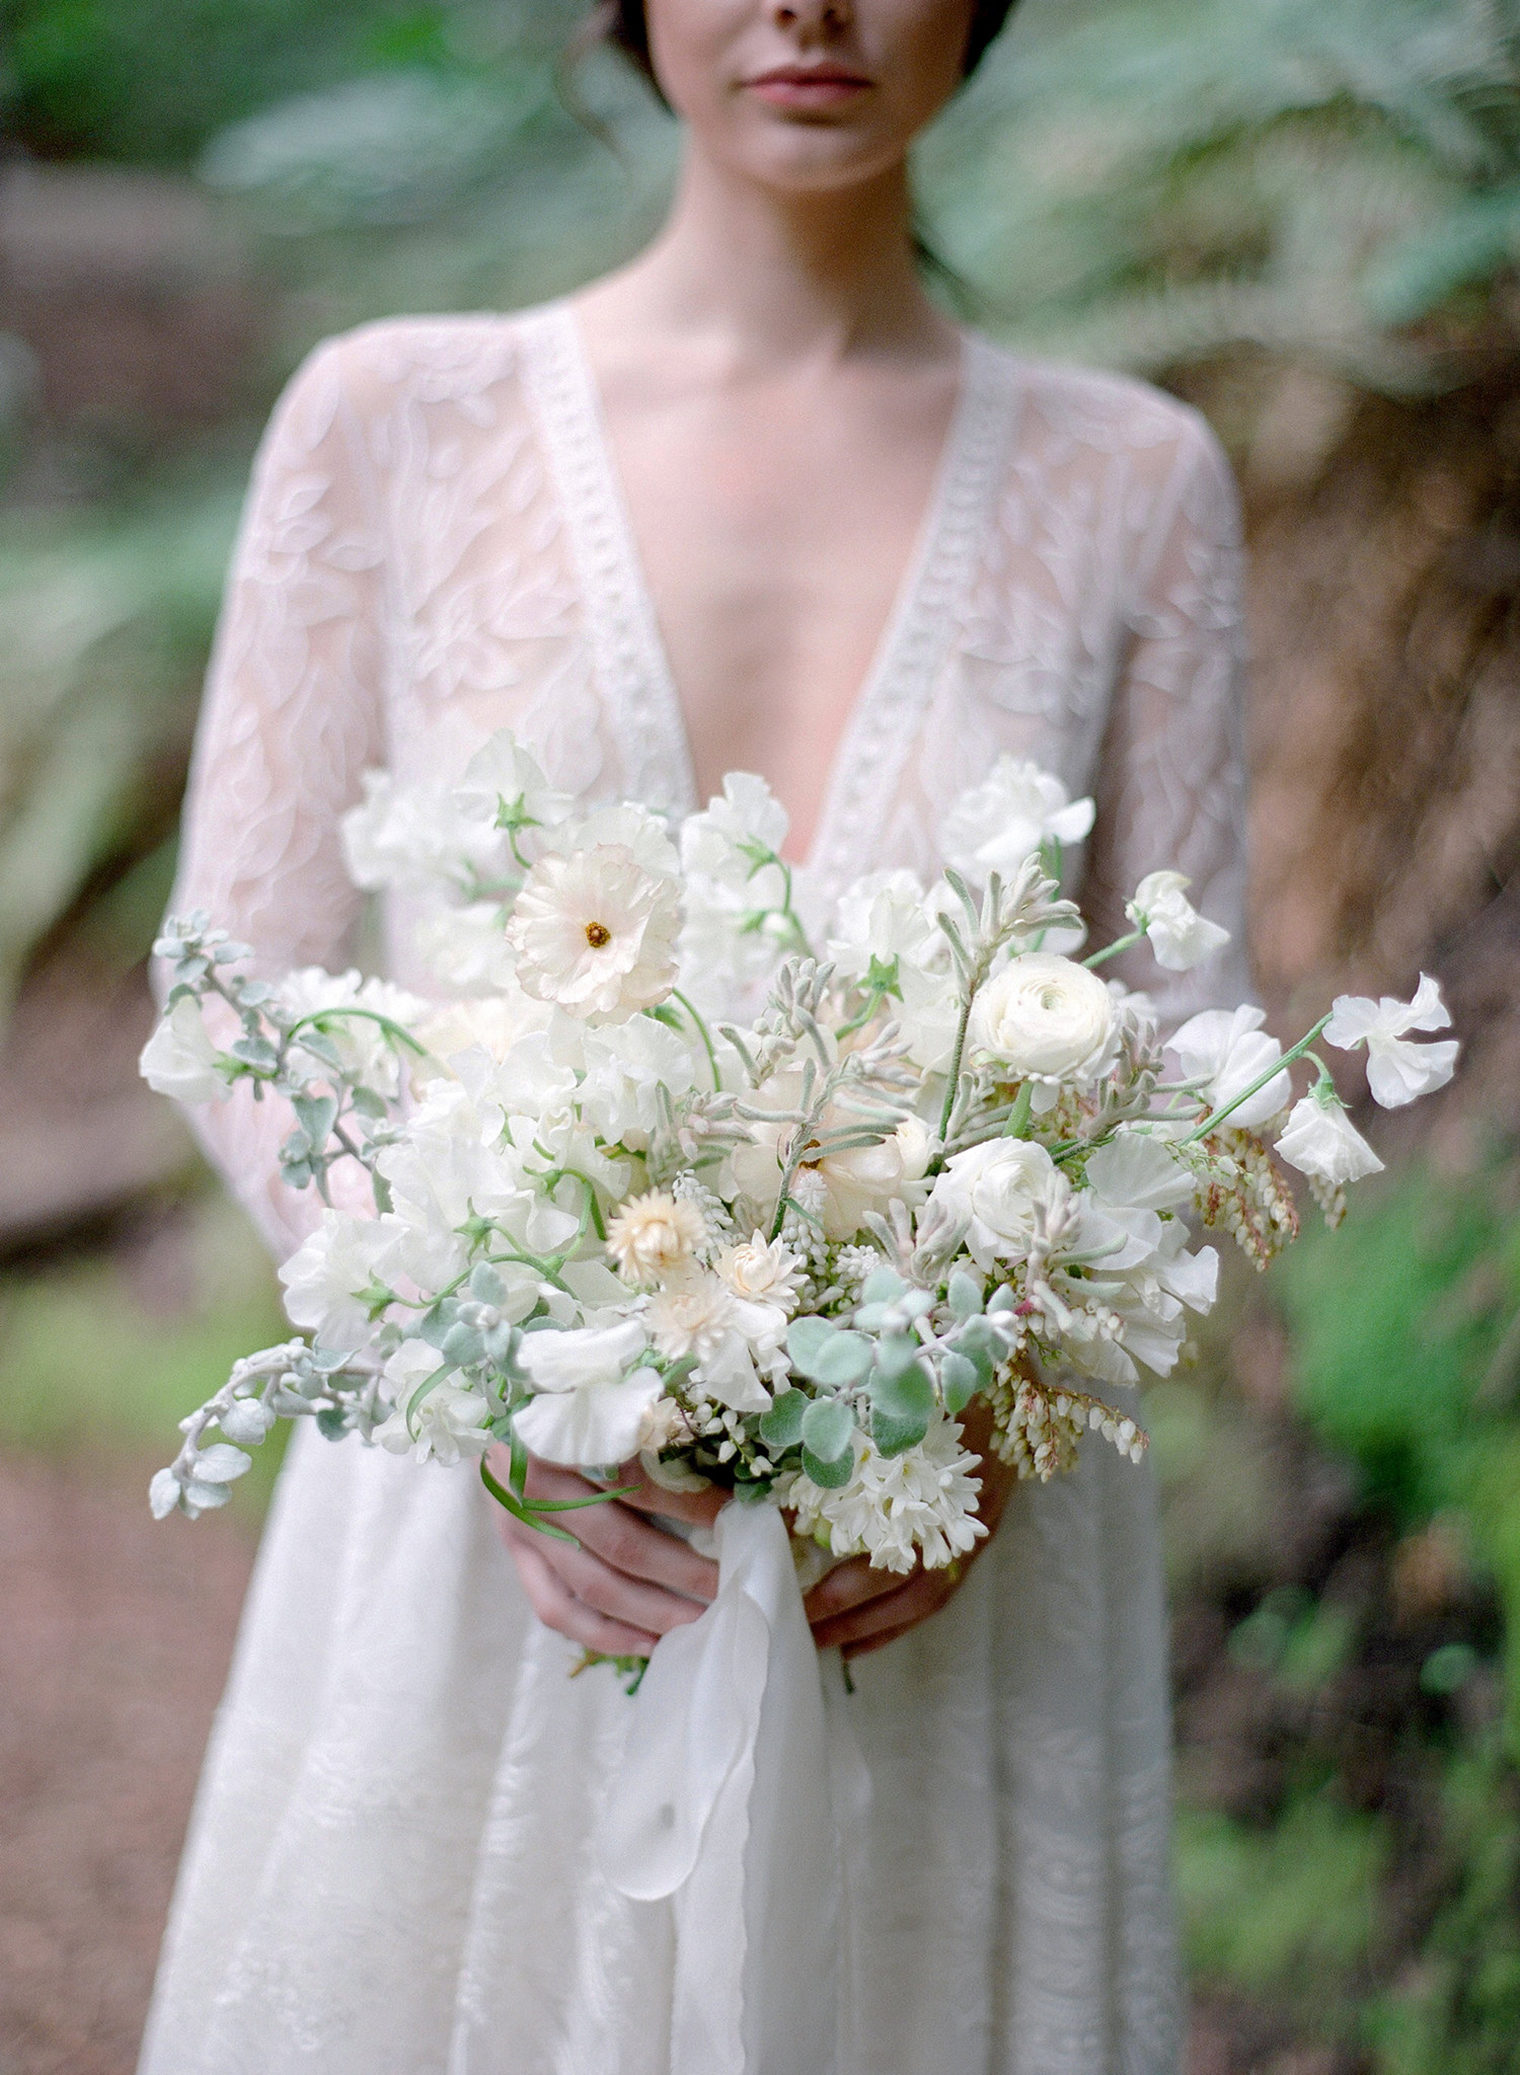 Wedding Shoot at Laurie Arons Masterclass featuring White Bridal Bouquet by Tinge photographed by Jose Villa